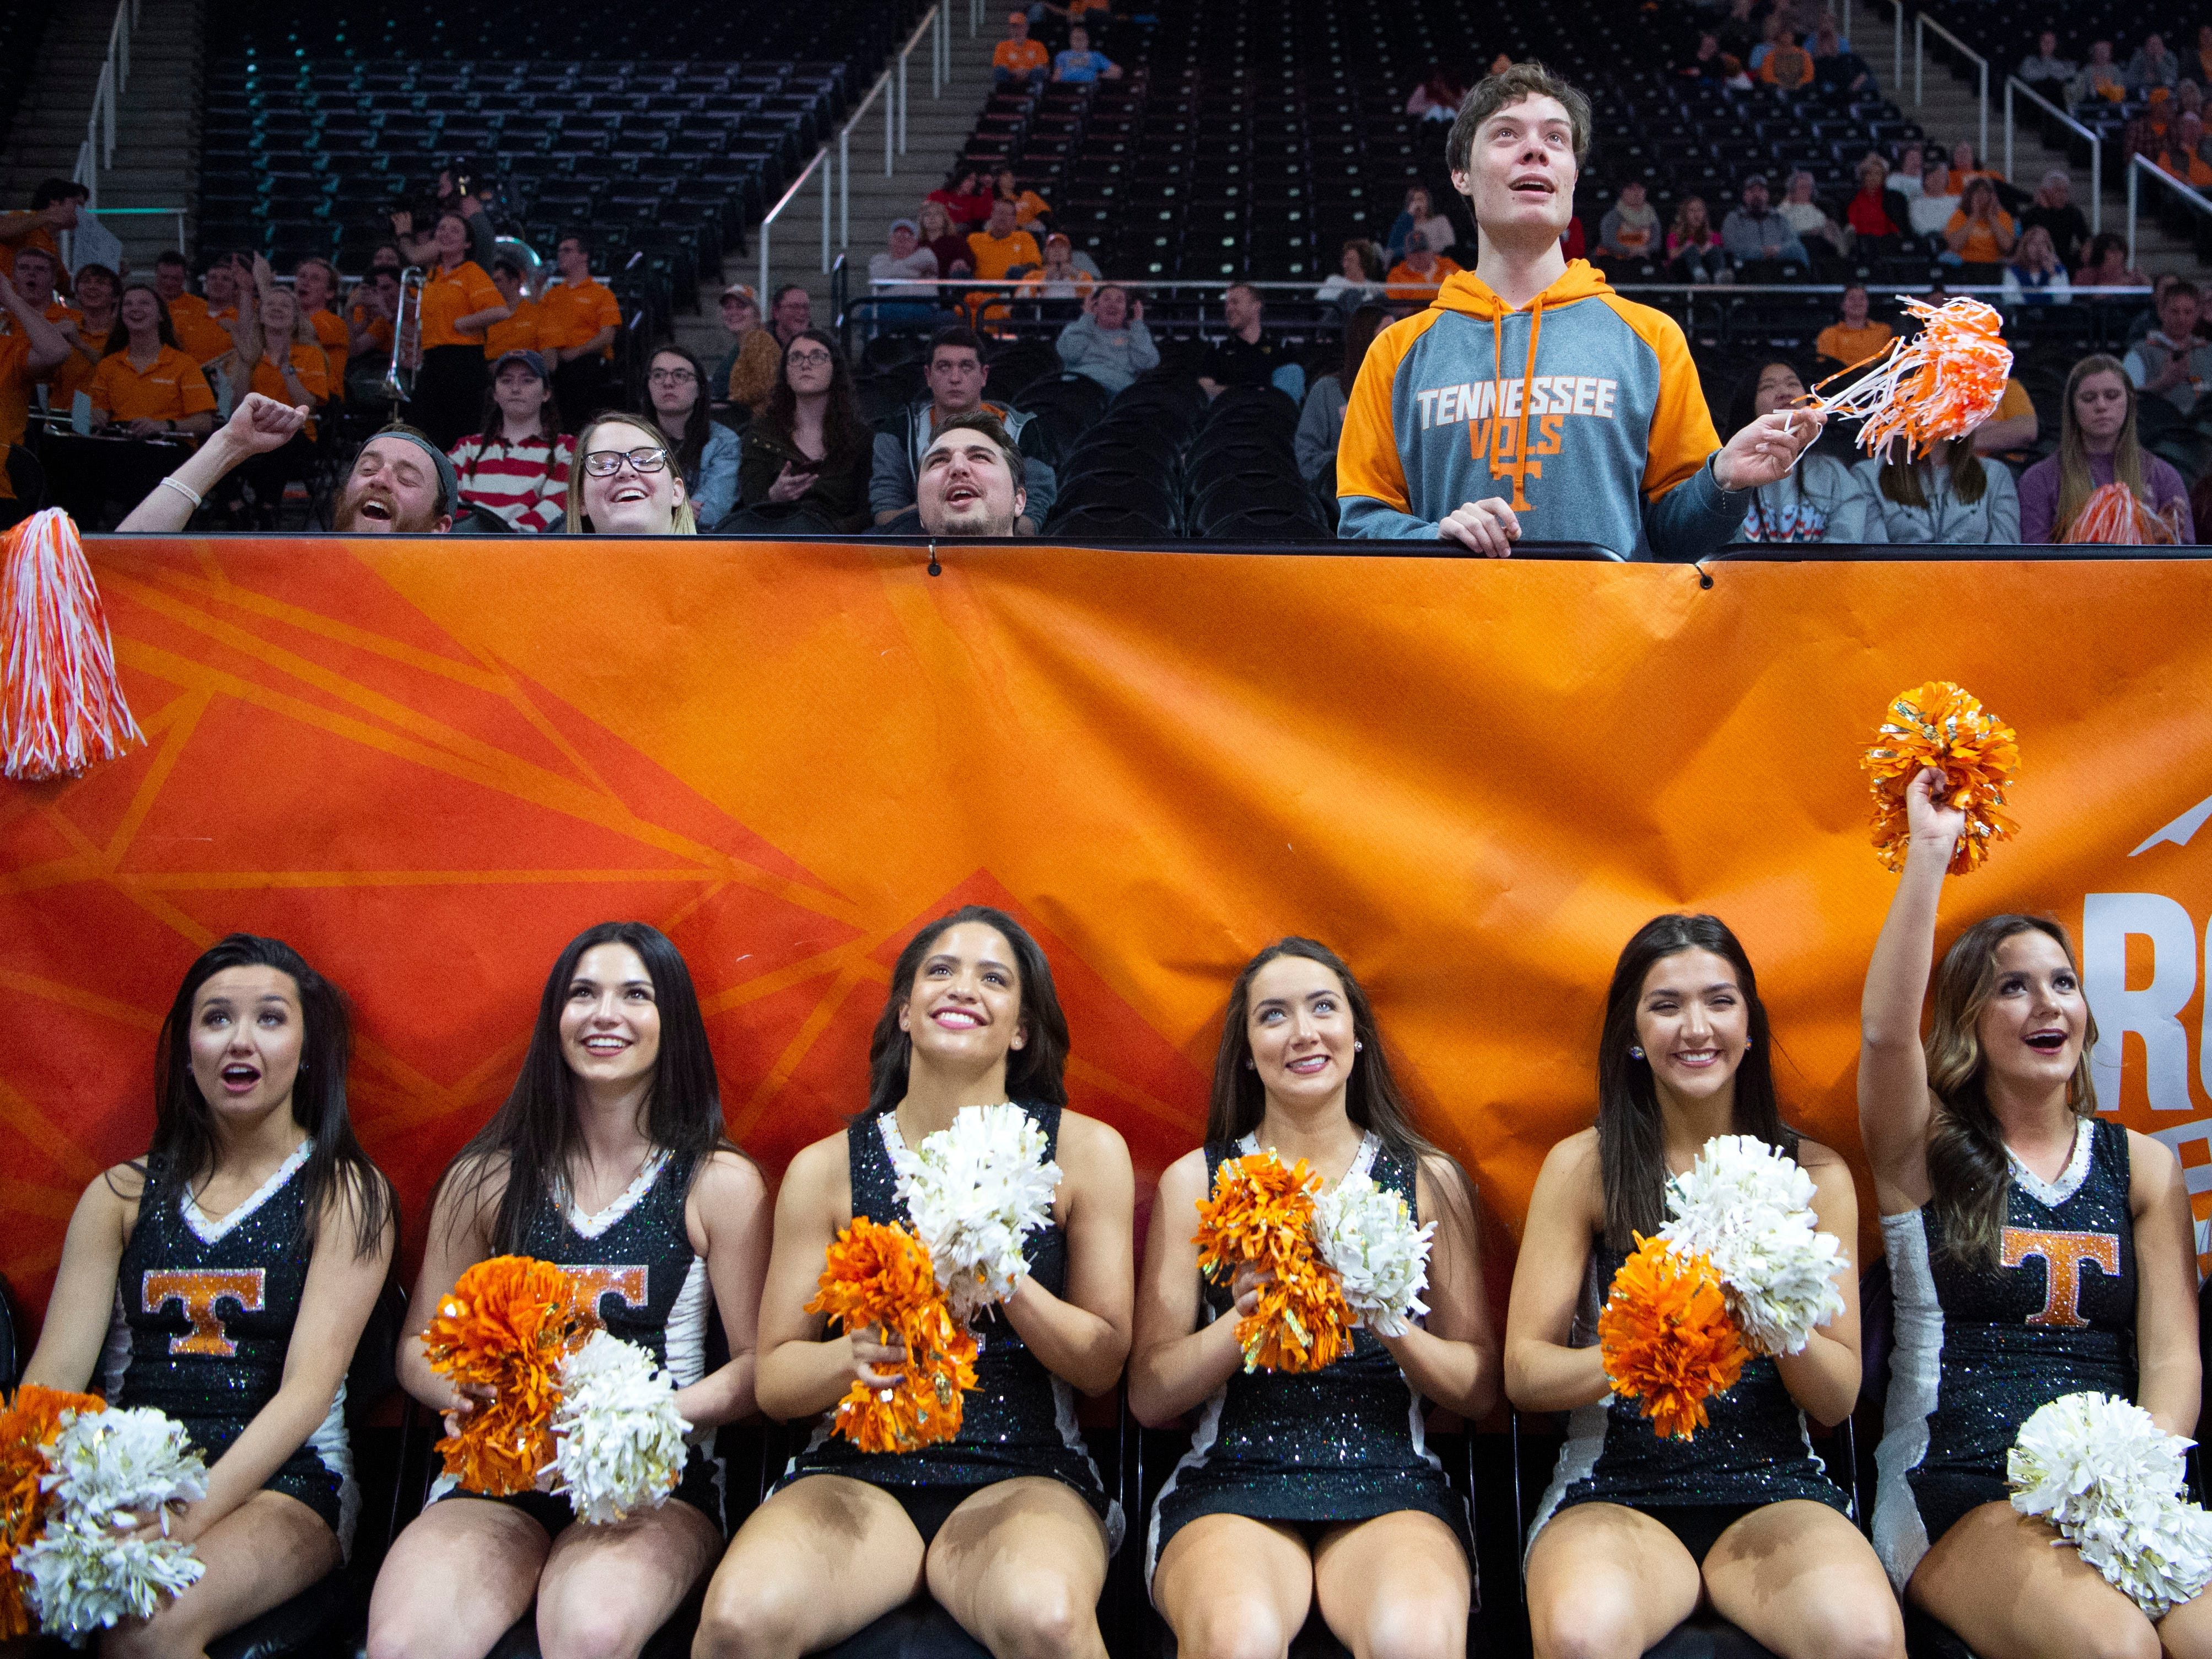 The Tennessee dance team cheer on the Lady Vols in the game against Auburn on Thursday, February 14, 2019.